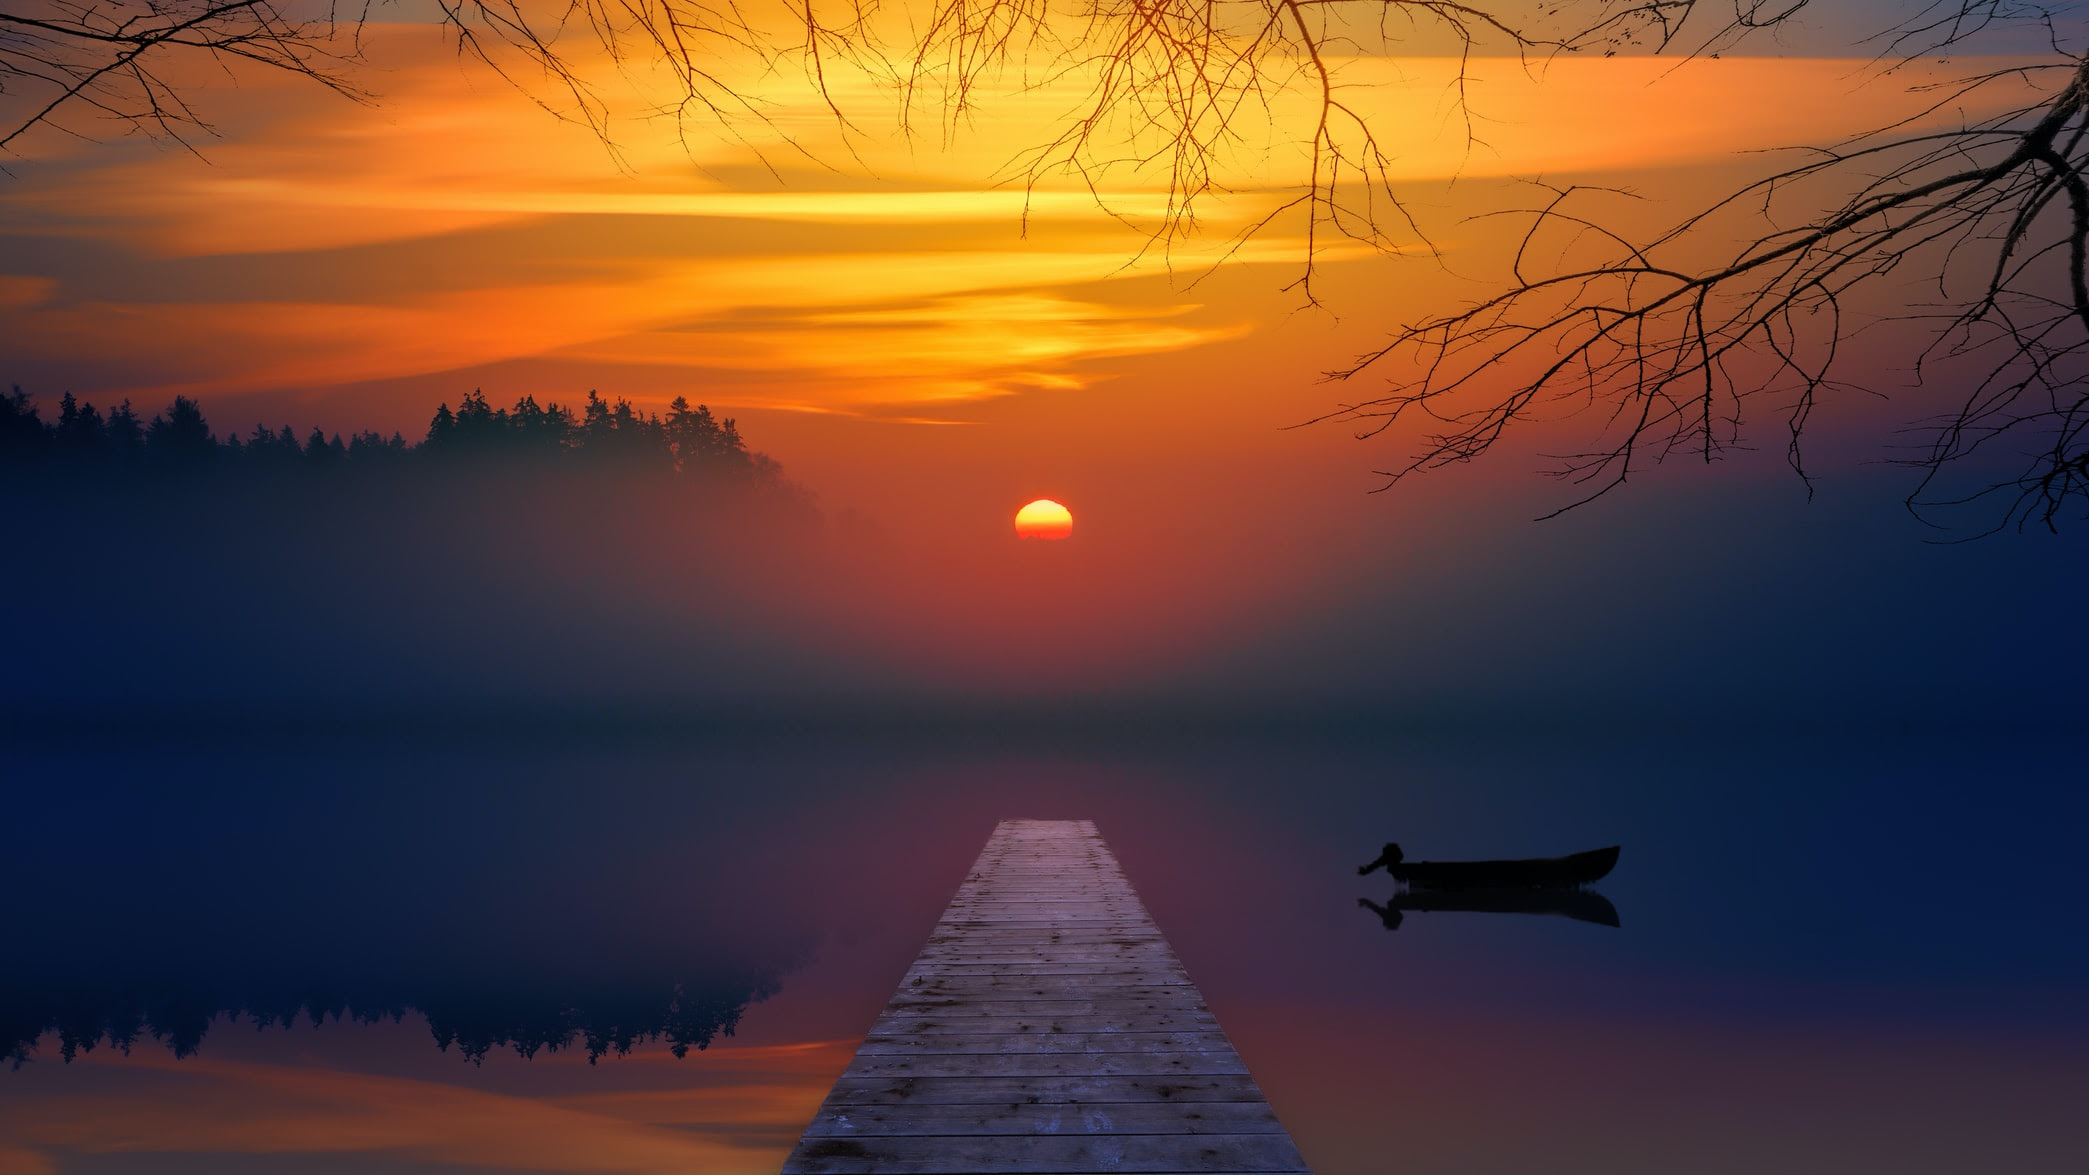 orange sunset in the mist over a lake with a dock and small rowboat